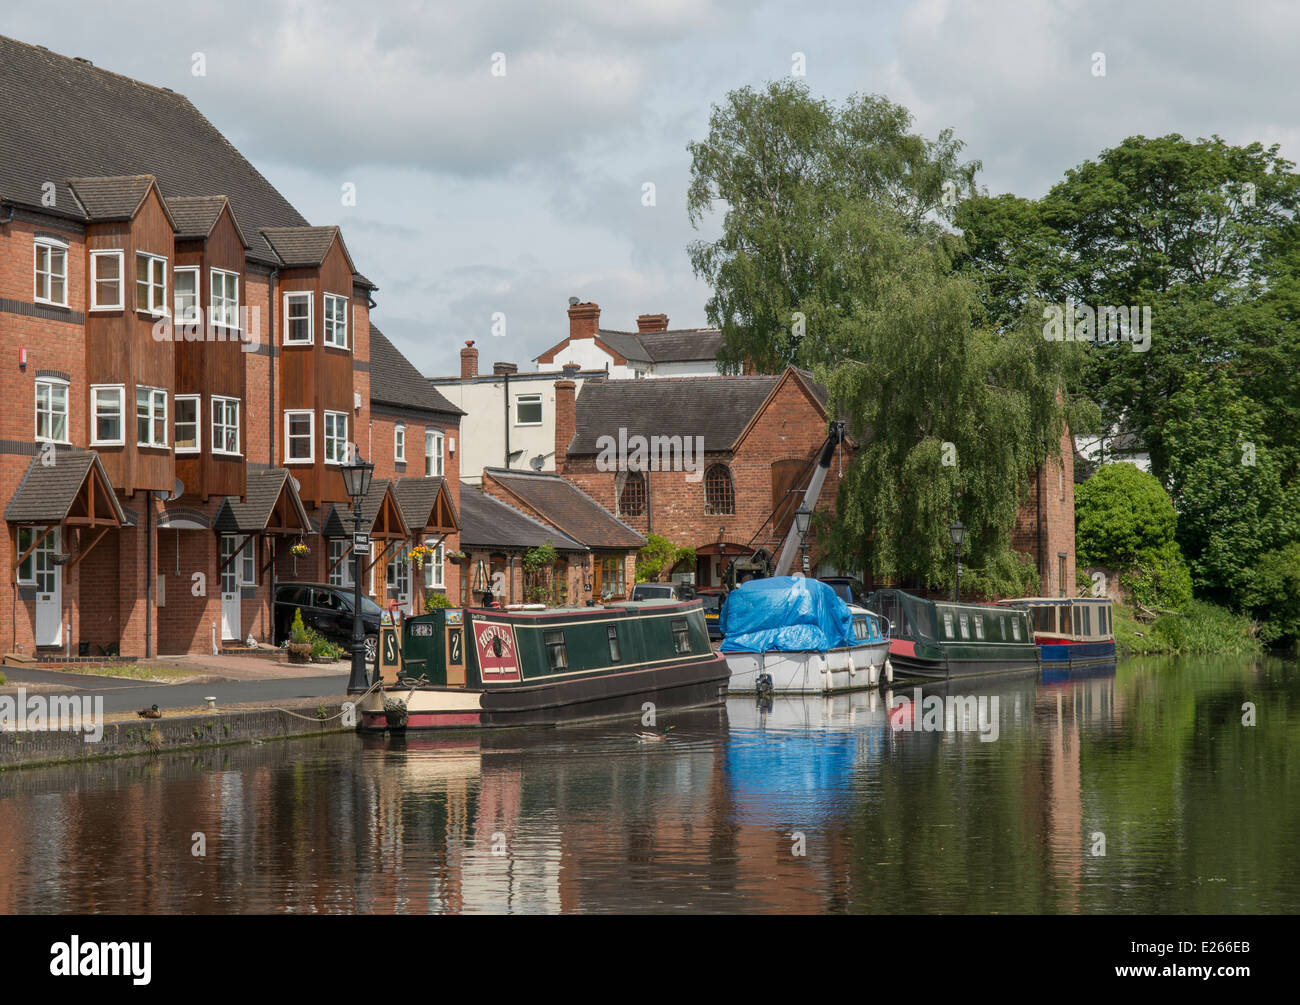 Boats on the Staffordshire and Worcestershire canal at Stourport on Severn in the county of Worcestershire, England. Stock Photo